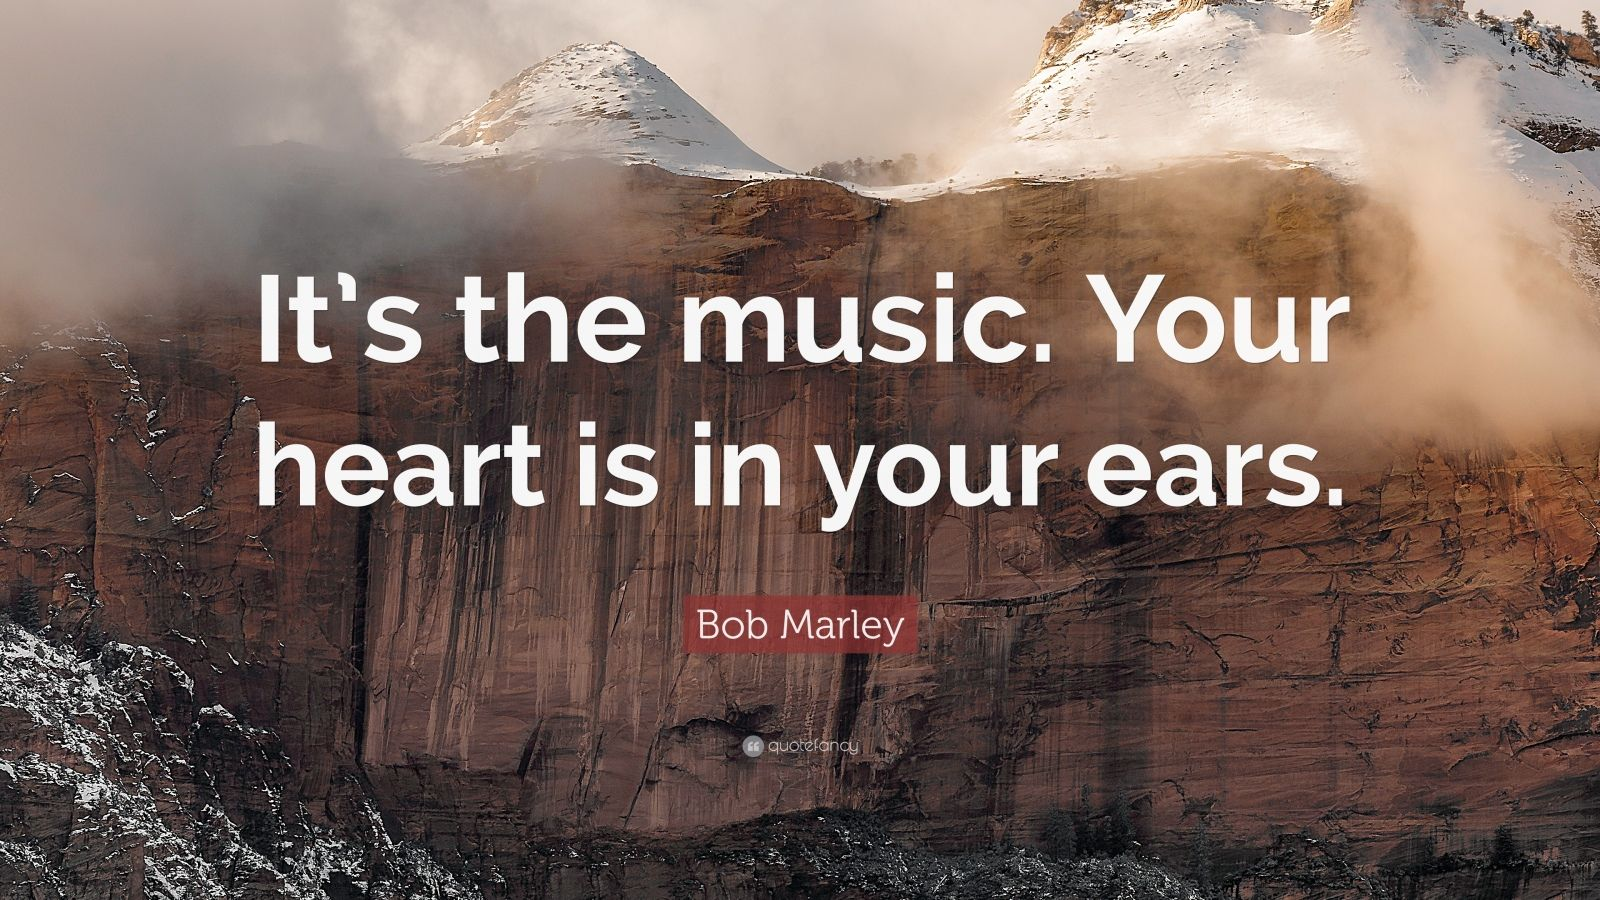 Bob Marley Quotes 100 Wallpapers Quotefancy